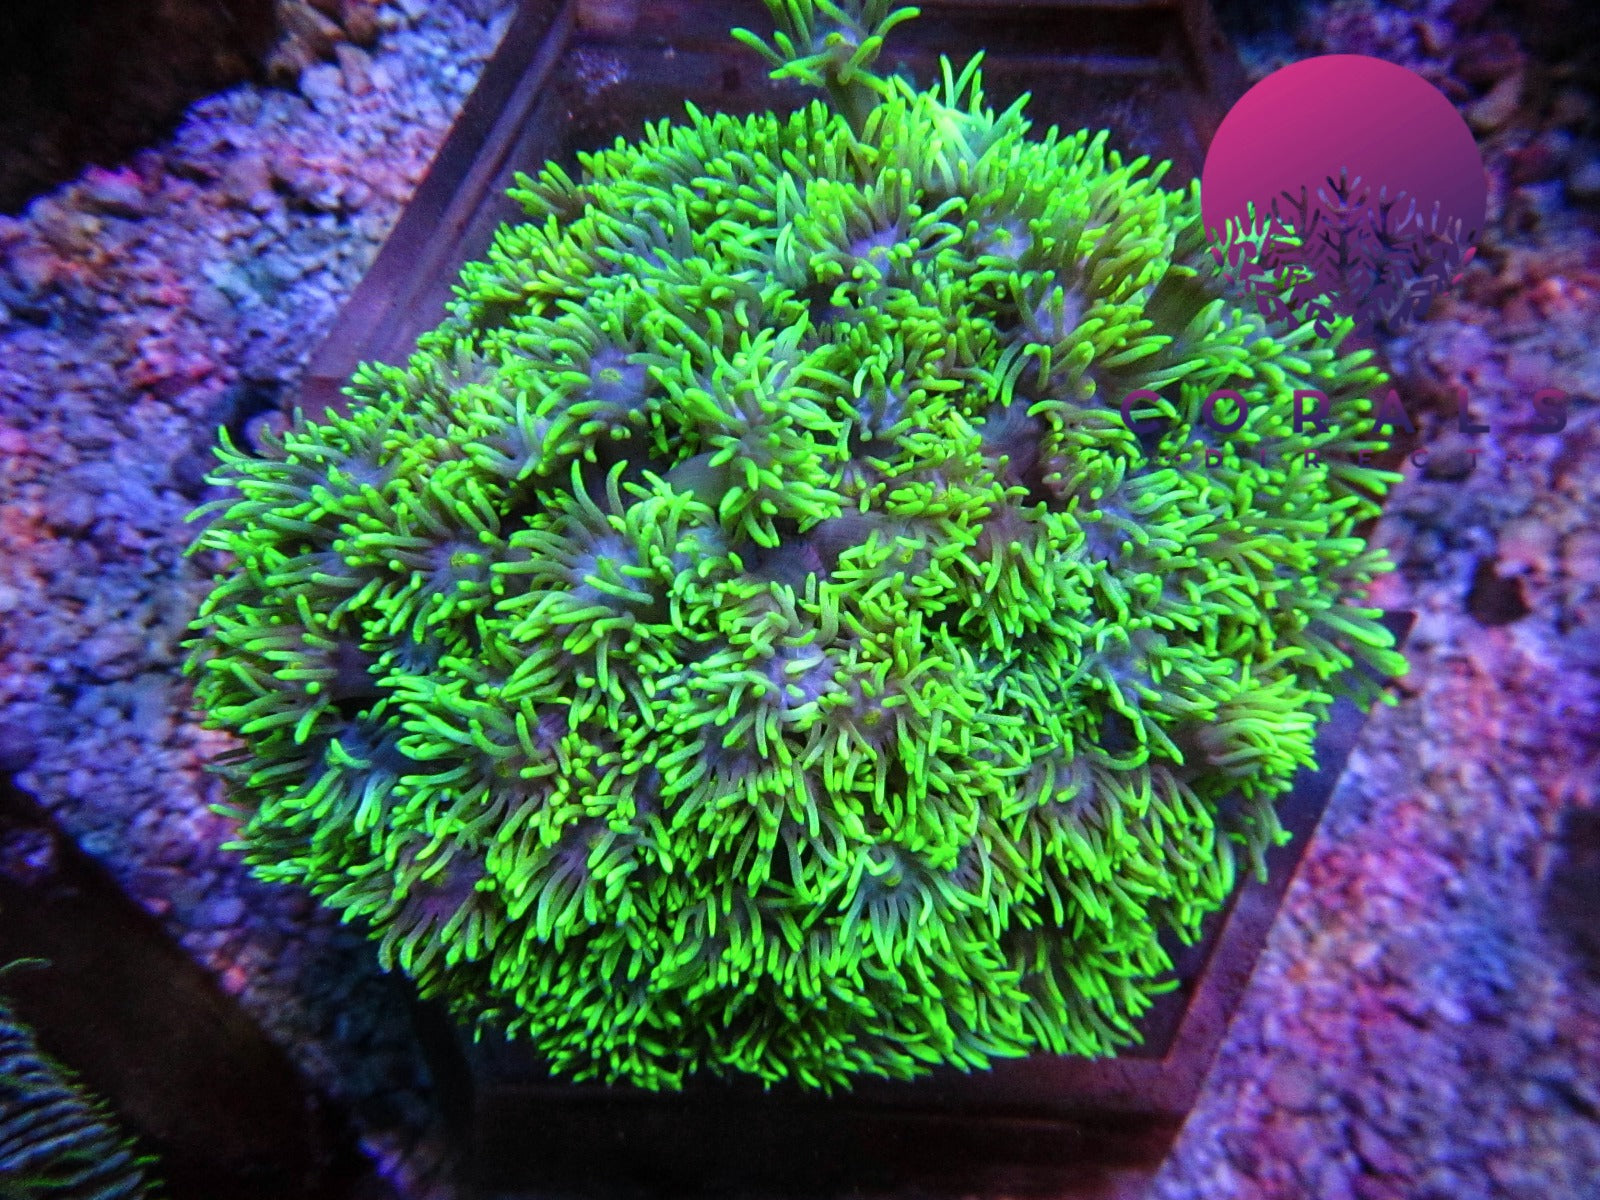 Coral collections tagged lps corals direct limited marine coral lps wysiwyg gonipora flower pot coral green with yellow heart mightylinksfo